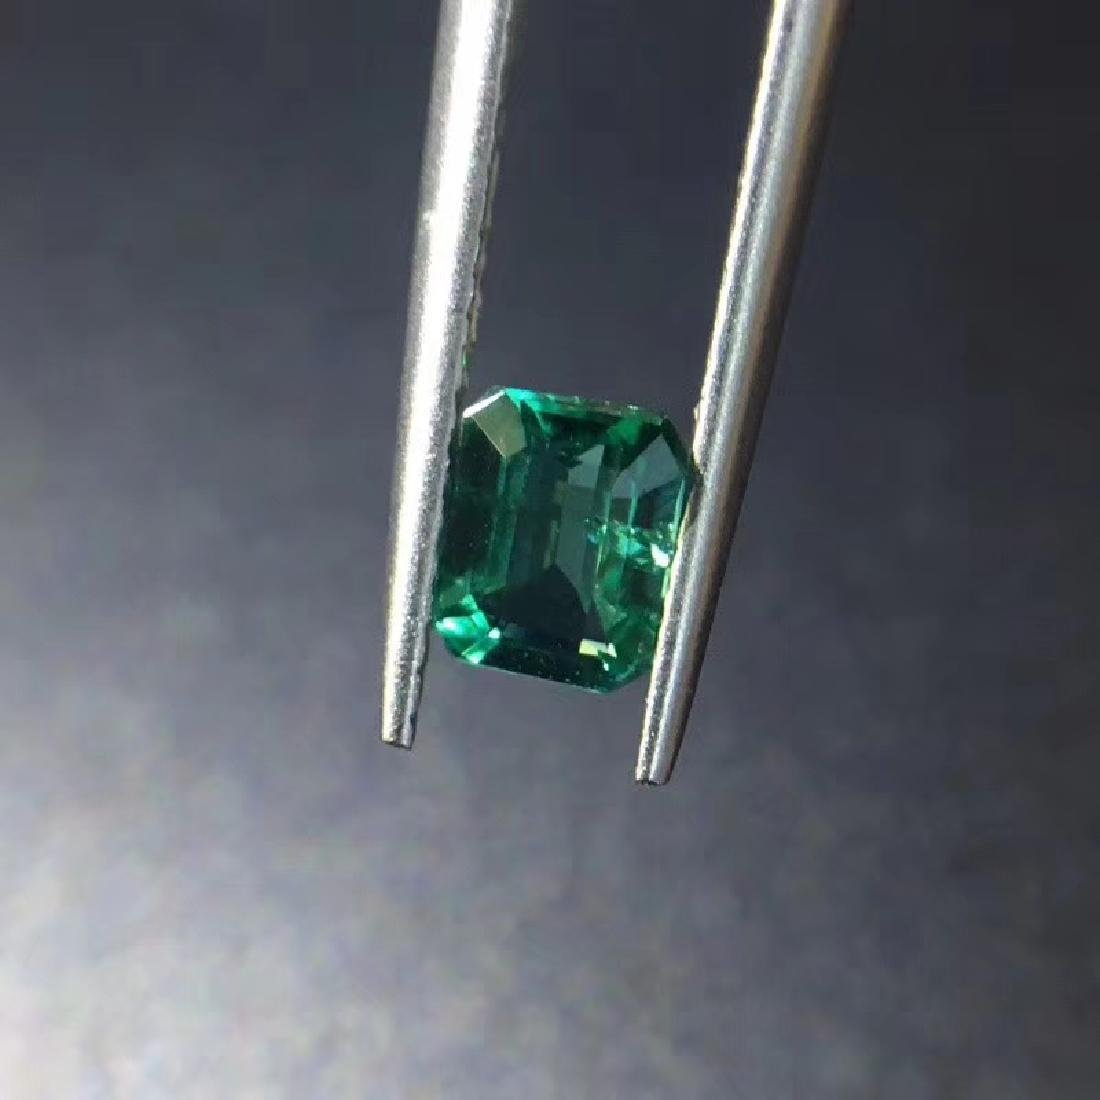 0.74 ct Emerald 5.8*4.5*3.4 mm square Cut - 4